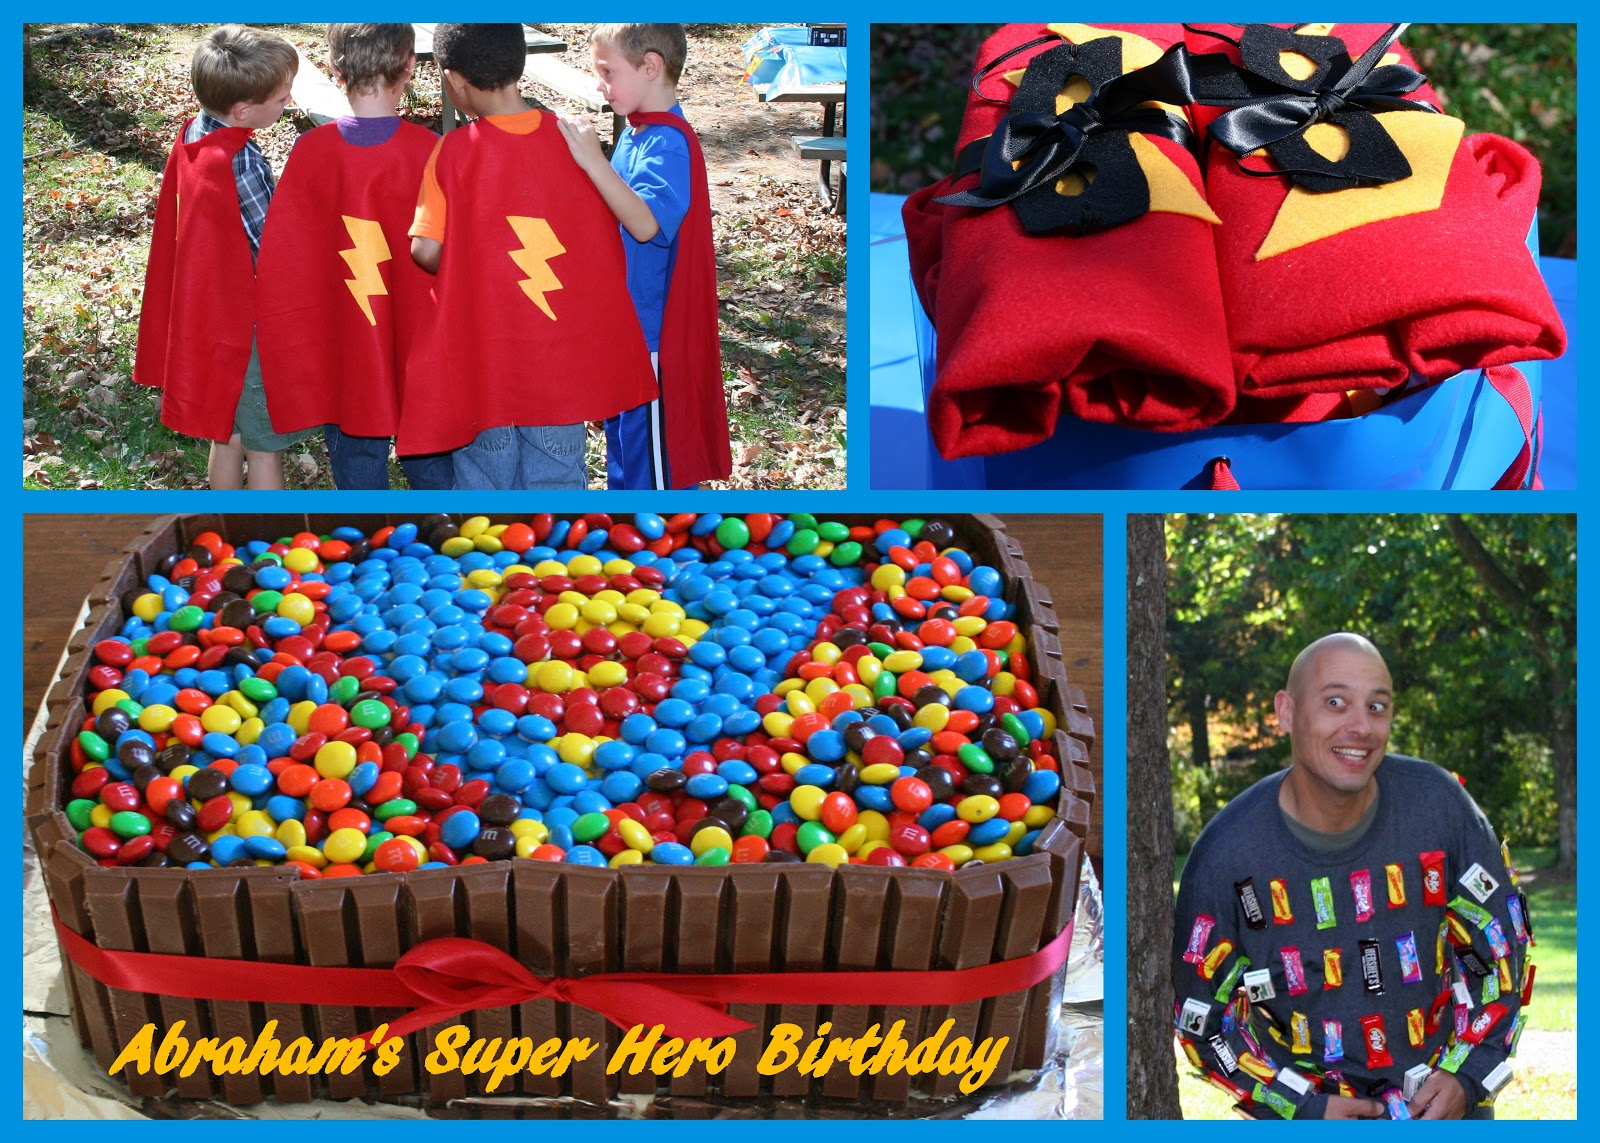 Fstop memories: Super Hero Party Highlights